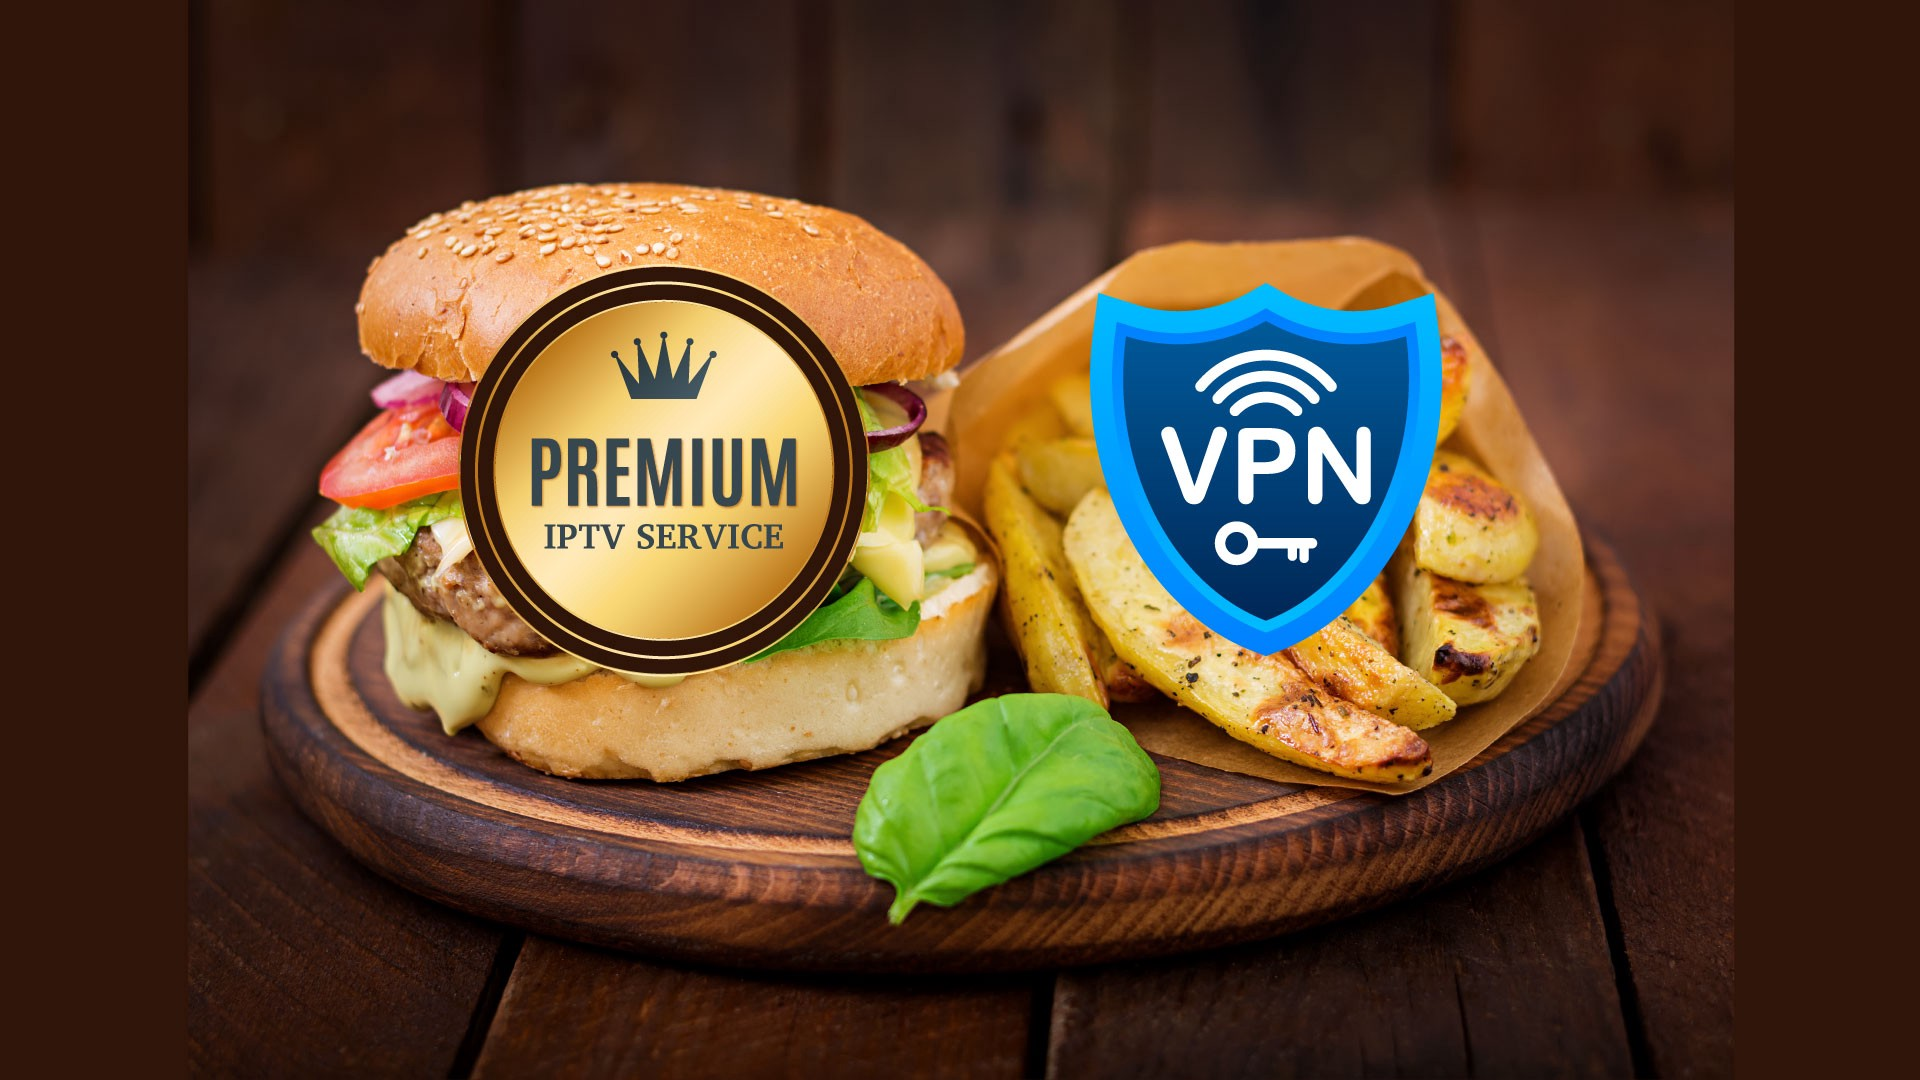 Premium IPTV Service and VPN Relationship Explained